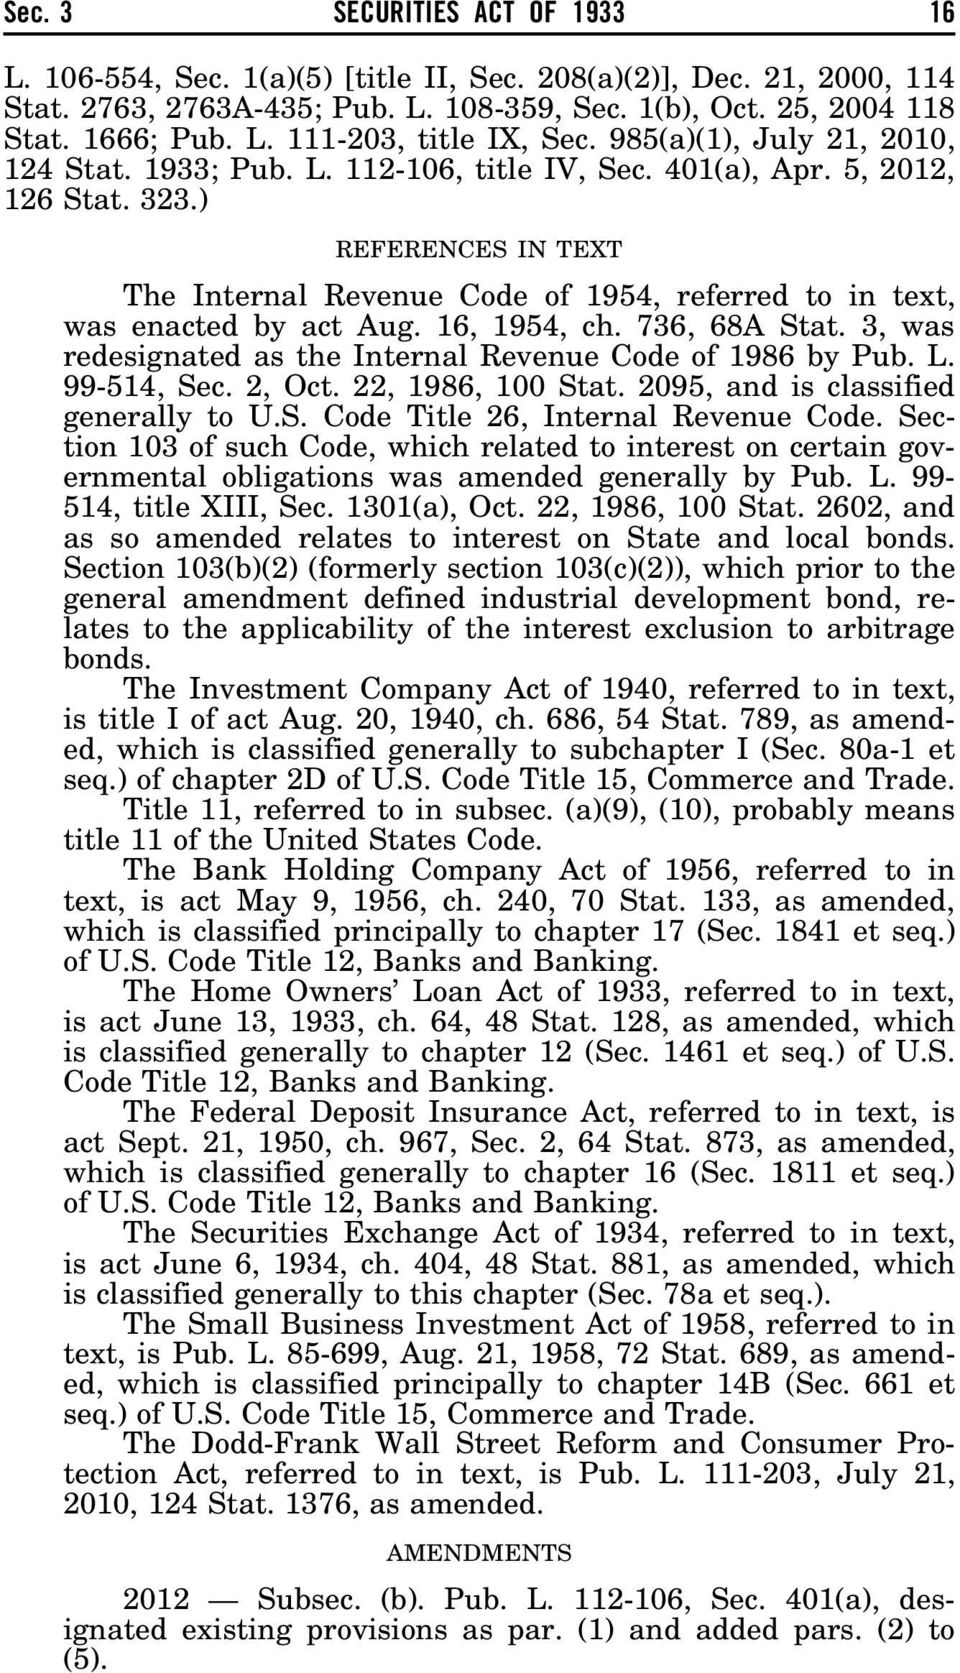 ) REFERENCES IN TEXT The Internal Revenue Code of 1954, referred to in text, was enacted by act Aug. 16, 1954, ch. 736, 68A Stat. 3, was redesignated as the Internal Revenue Code of 1986 by Pub. L.